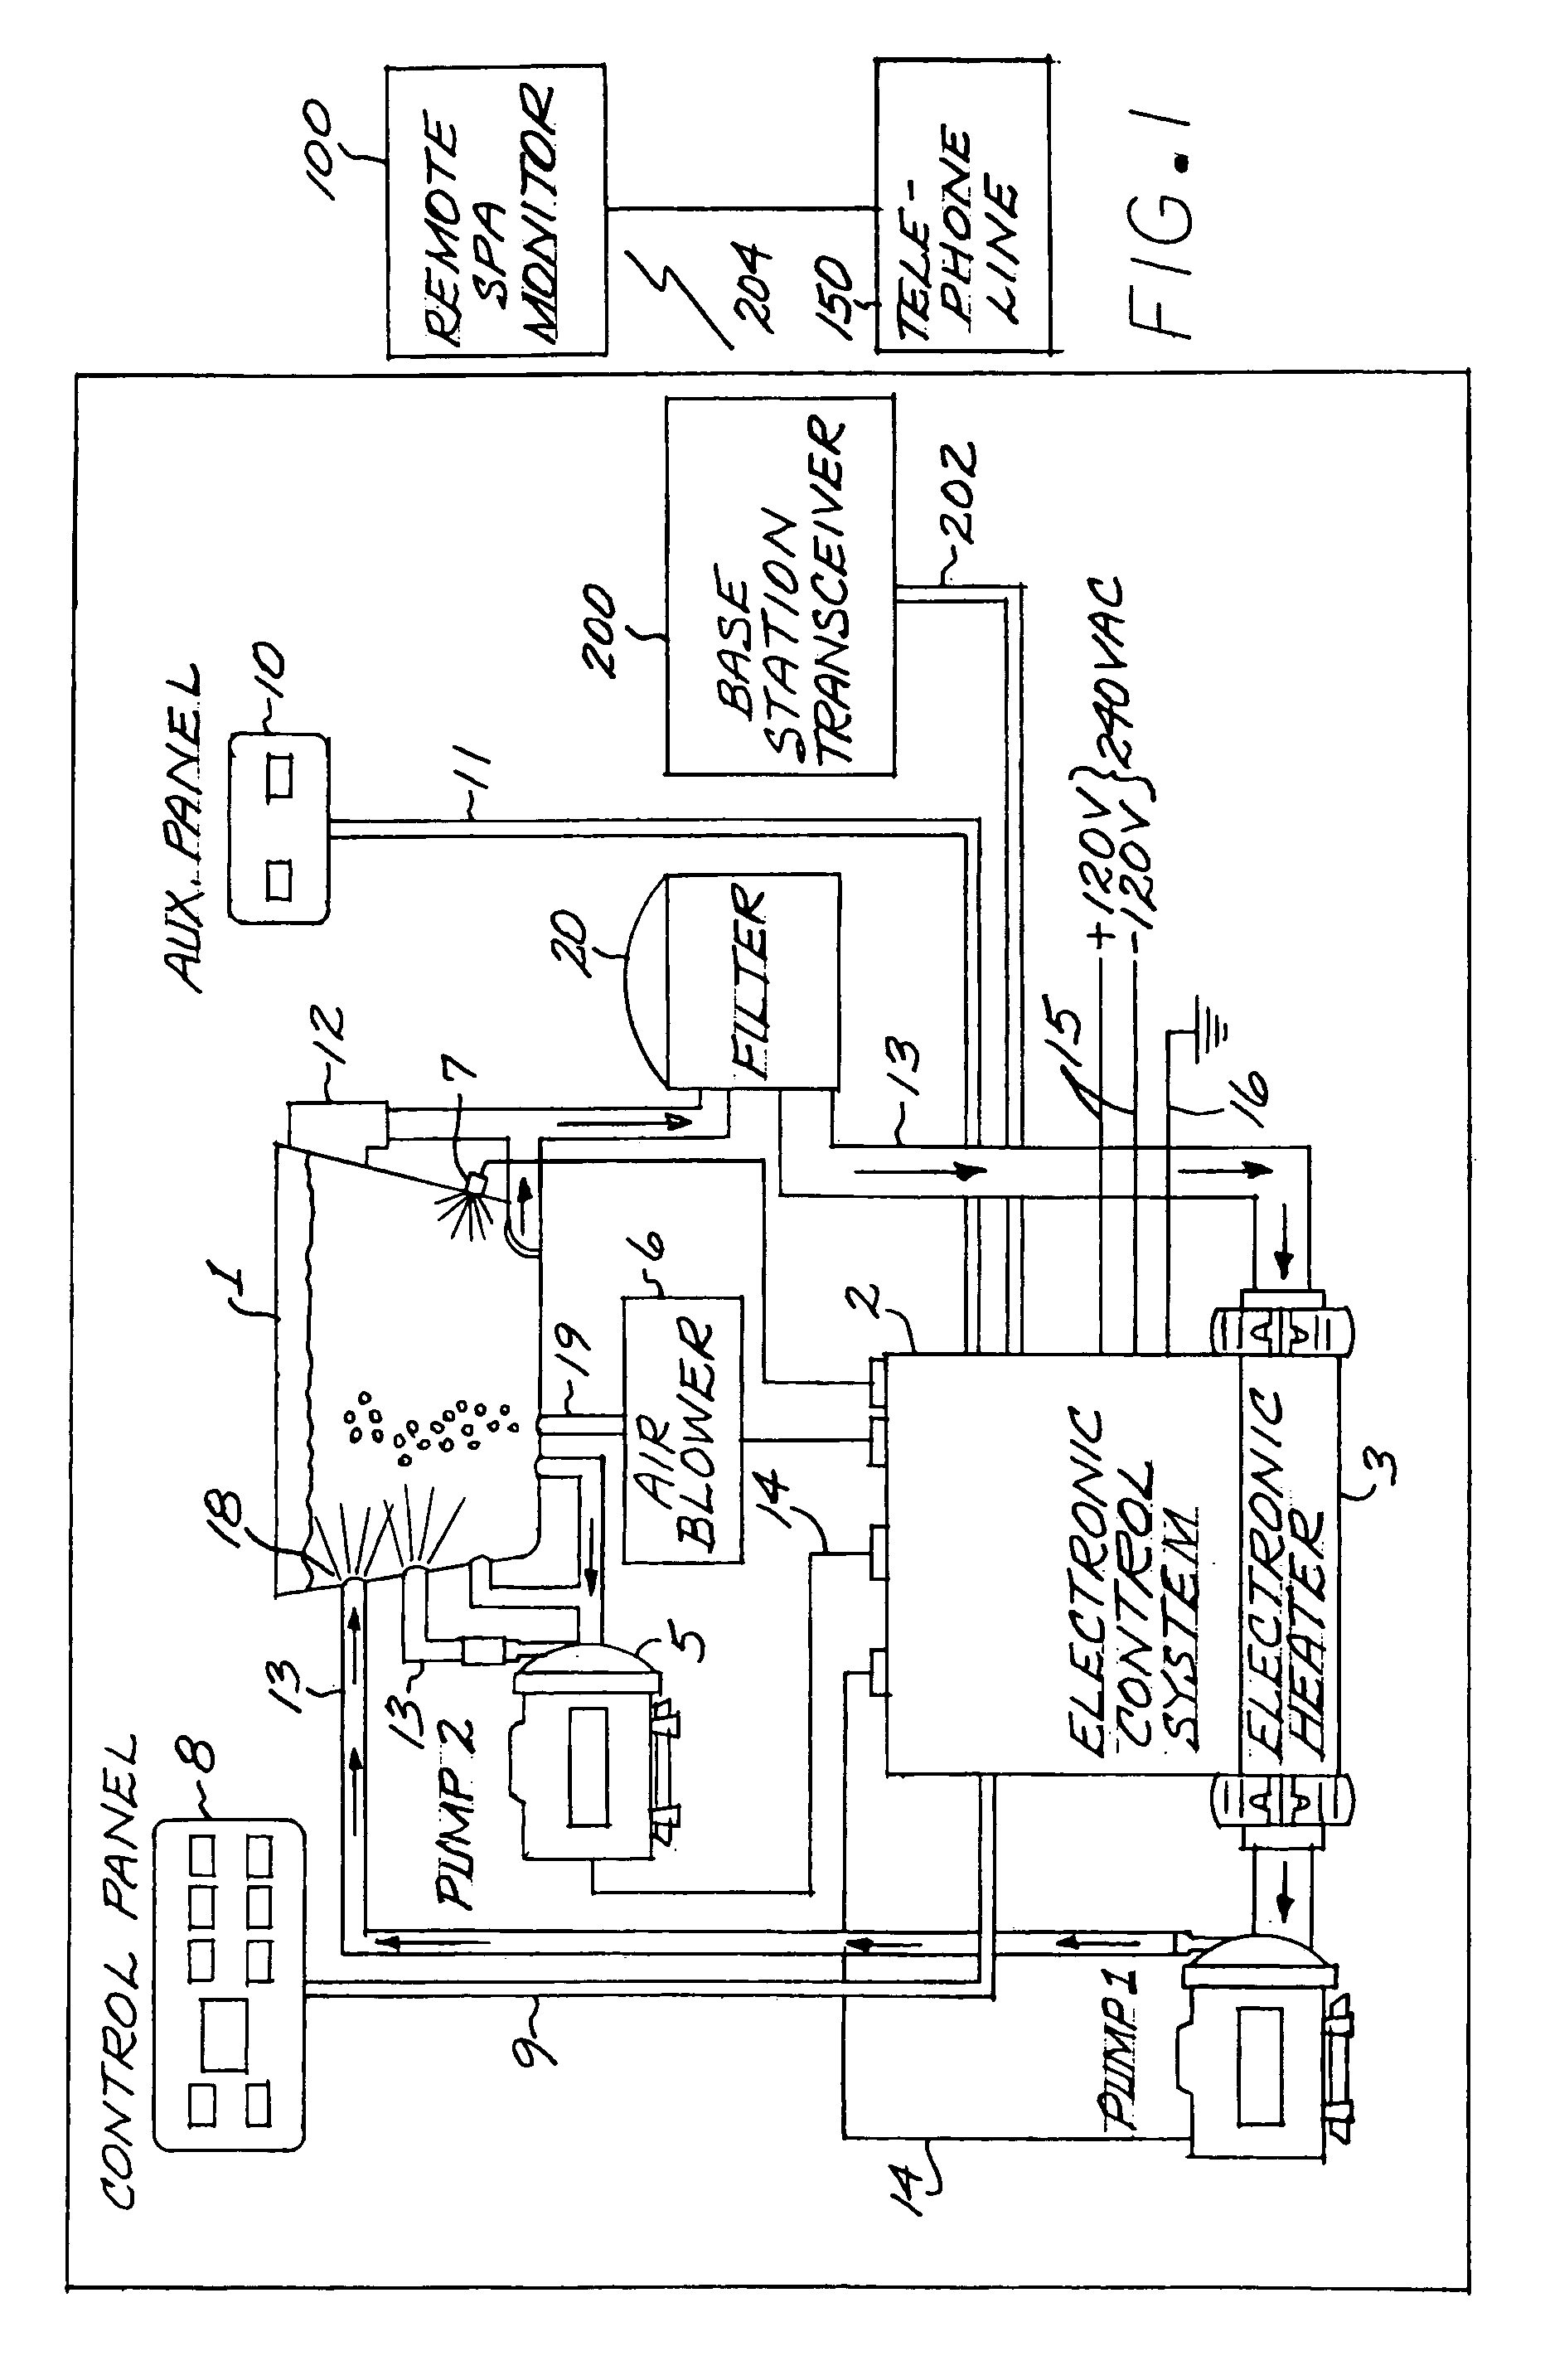 Gecko Hot Tub Control Panel Wiring Diagram Spa 24 Images Us07167087 20070123 D00001 Patent Us7167087 Remote Monitor Google Patents At Cita